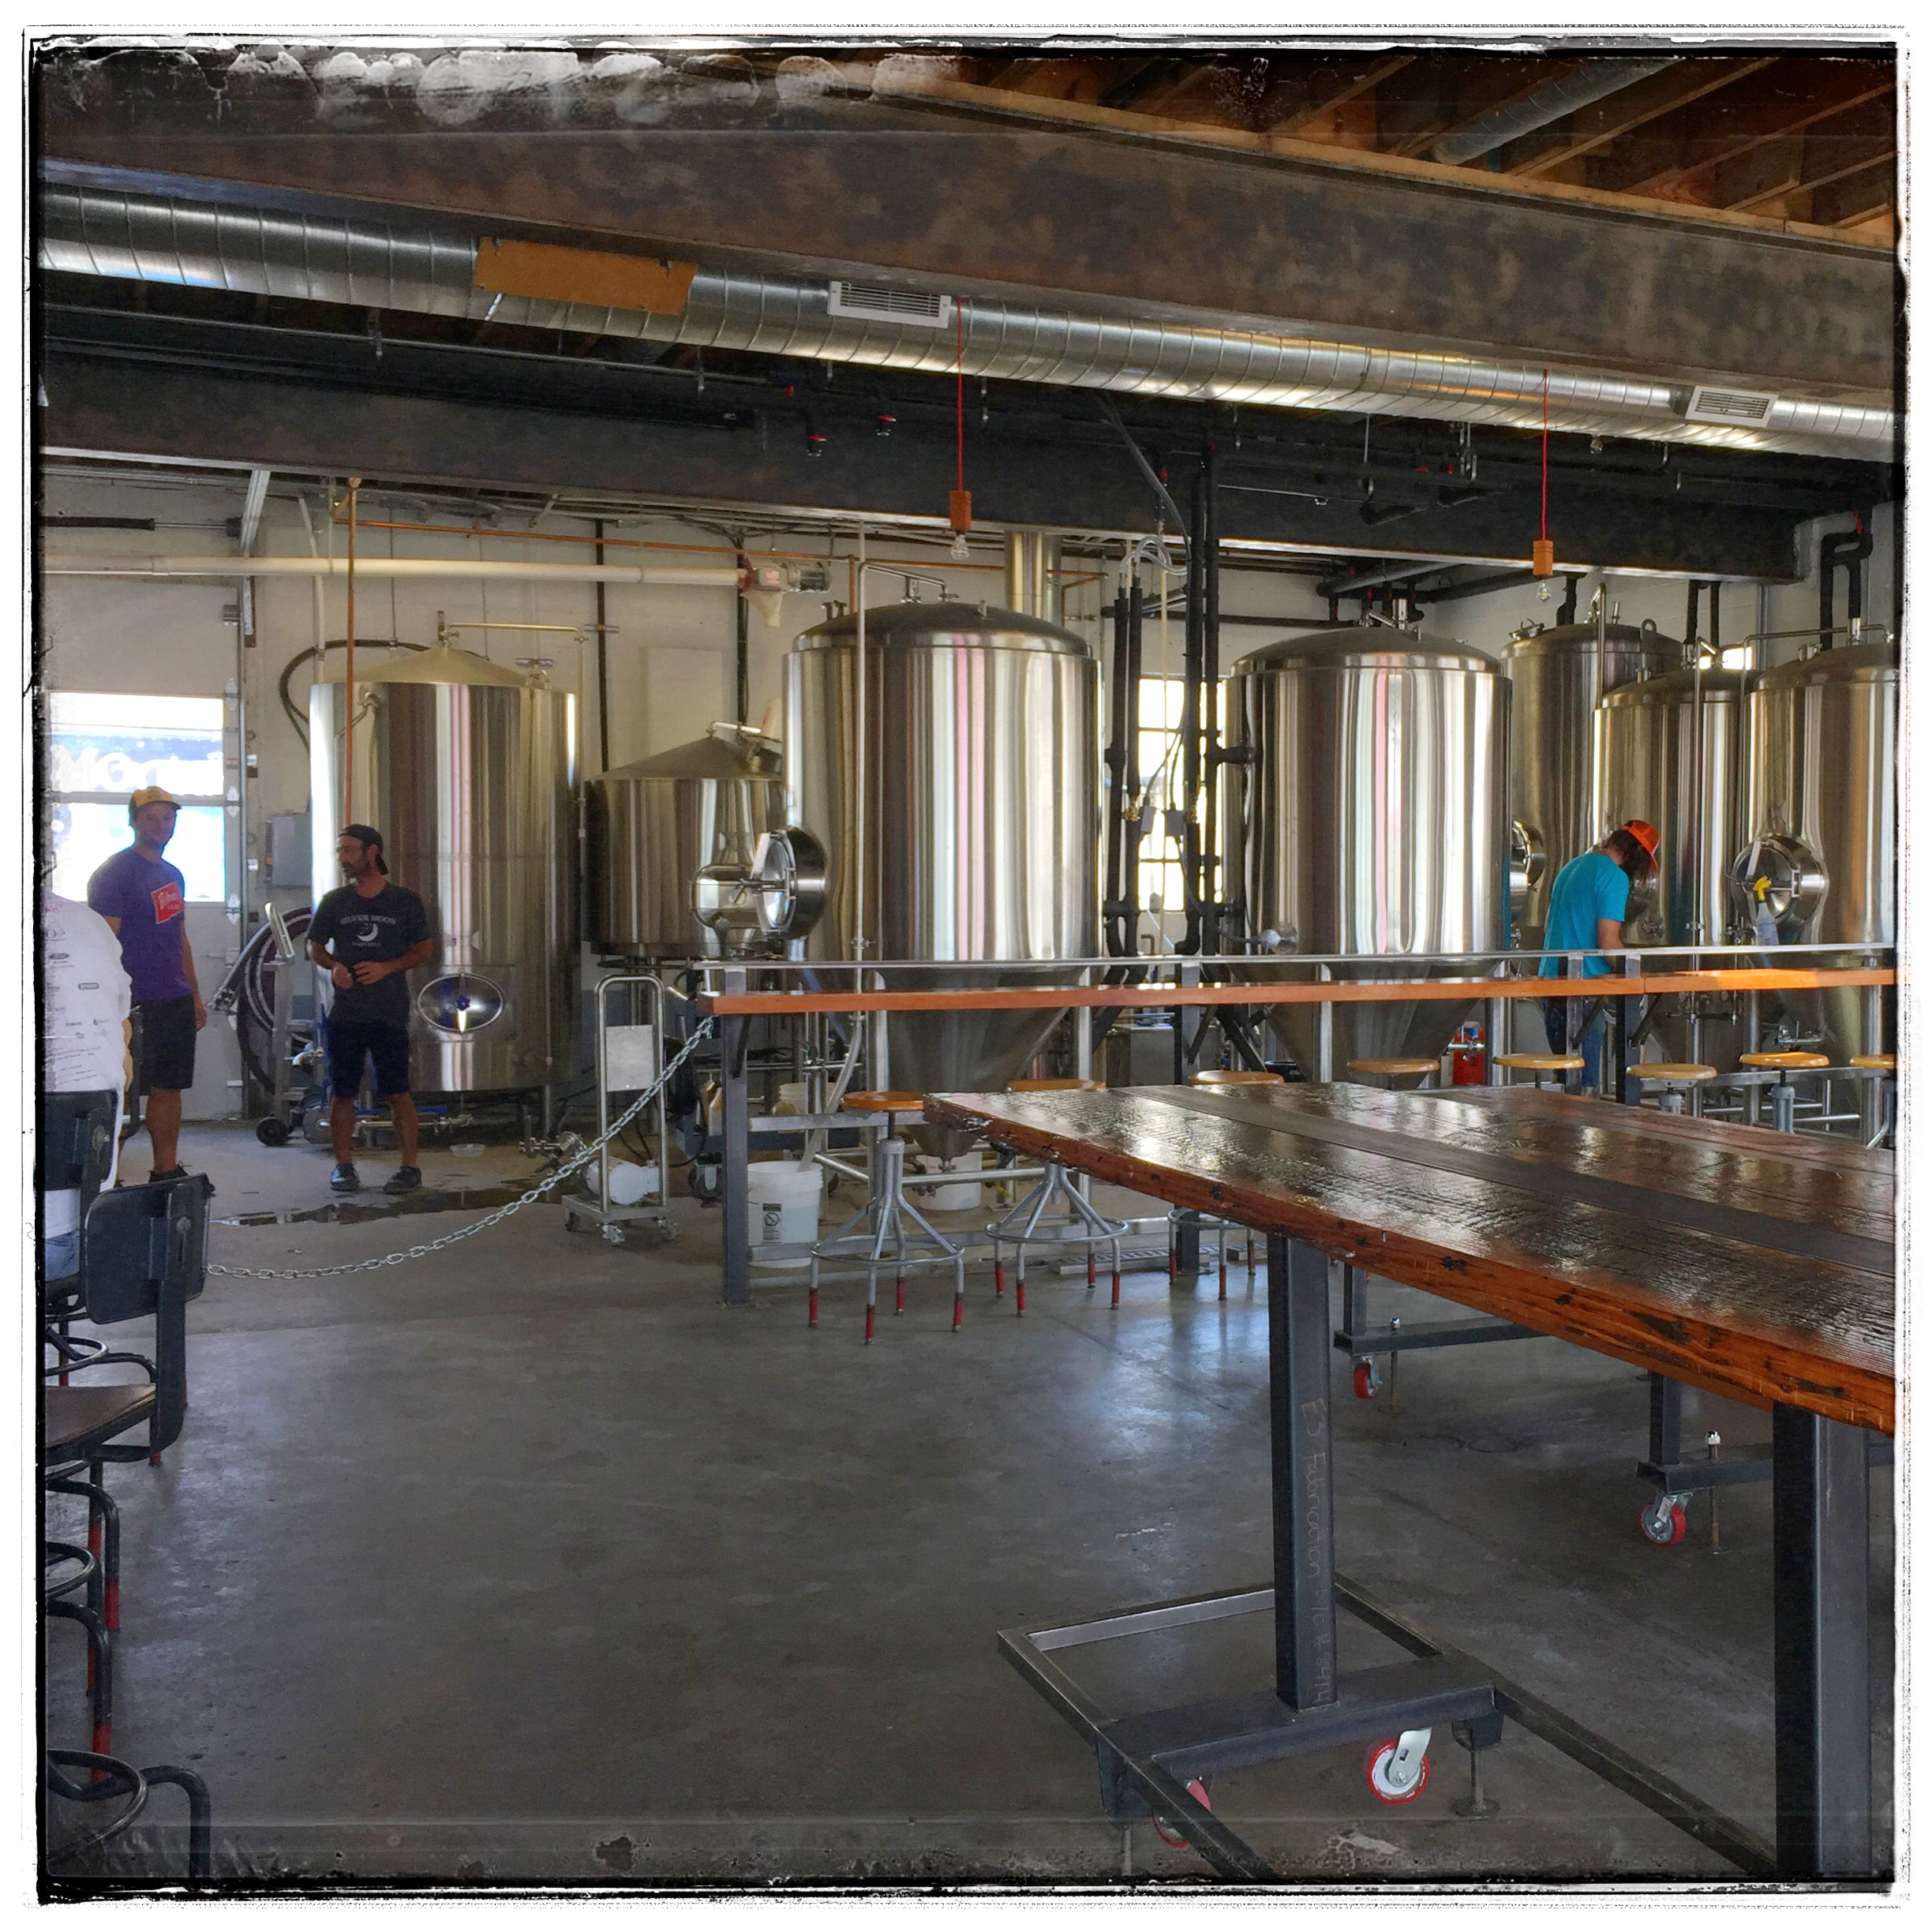 Fisher's Taproom - The taproom shares the space with the brewing tanks.